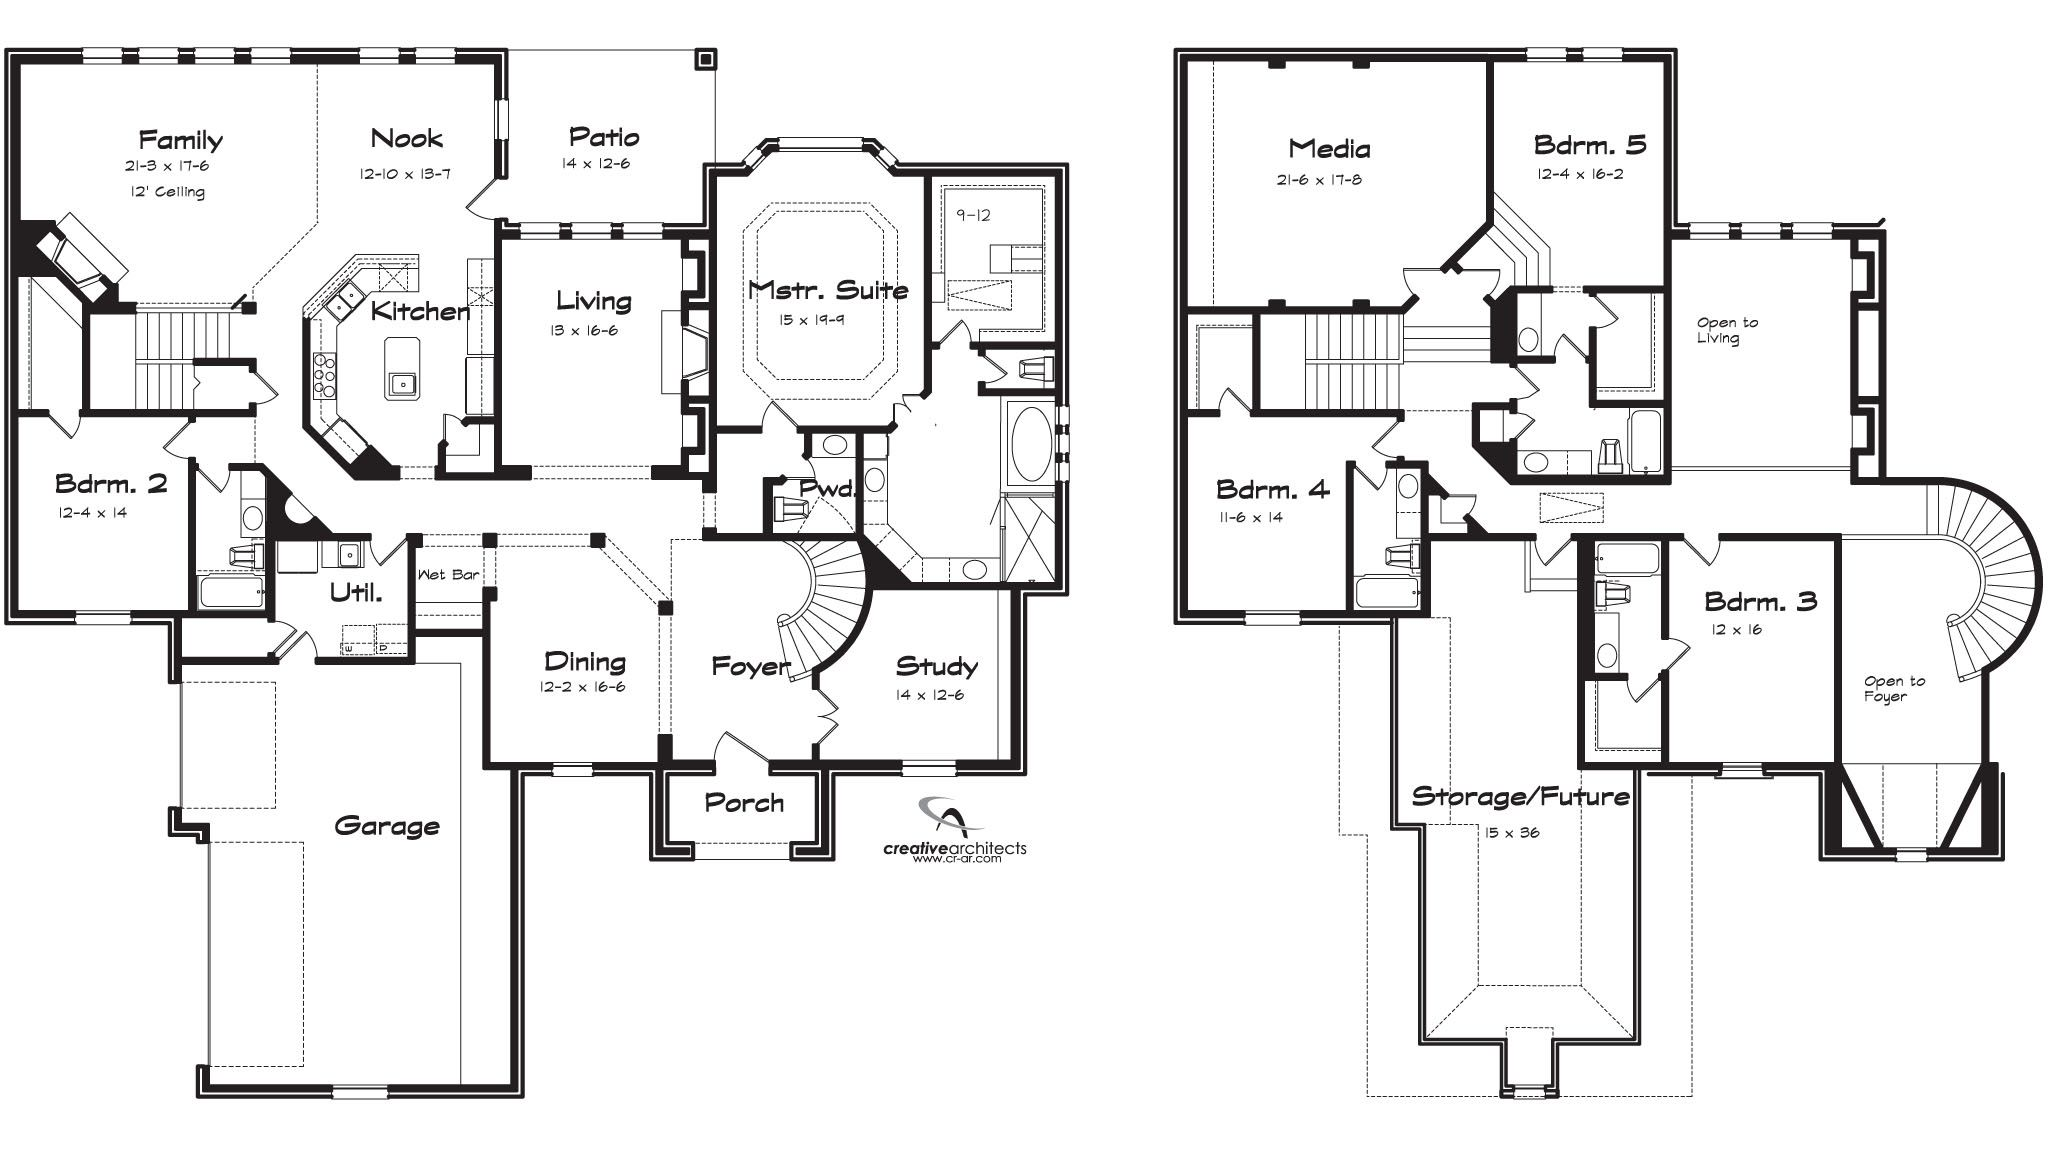 Best House Plans corner the market house plans we know youll love 2 Story 5 Bedroom House Plans Comfortable Eastwood Texas Best House Plans By Creative Architects